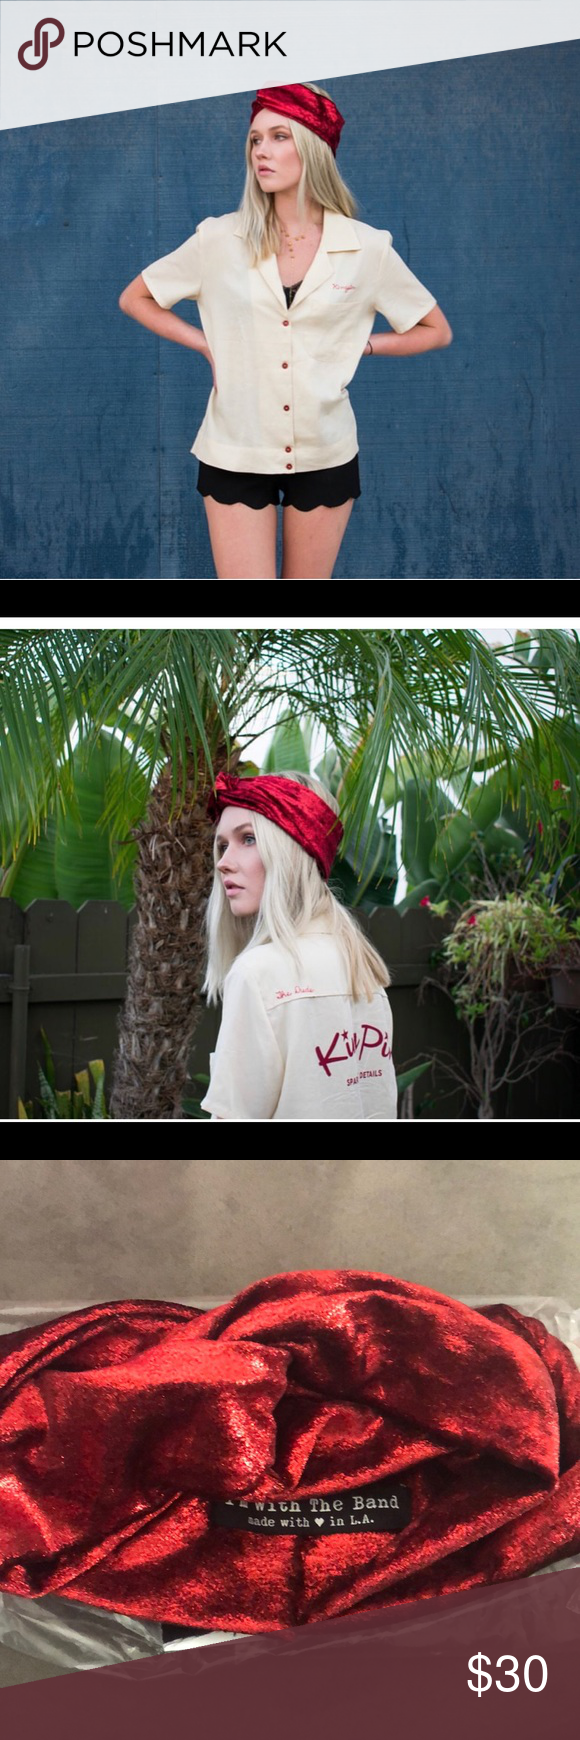 IM WITH THE BAND | Ruby Tuesday Turban Headband Excellent Like New condition. IM WITH THE BAND Ruby Tuesday Velvet Foil Turban Headband. Shimmery Red goodness. Stretchy and Comfortable. Im with the band Accessories Hair Accessories #rubytuesdays IM WITH THE BAND | Ruby Tuesday Turban Headband Excellent Like New condition. IM WITH THE BAND Ruby Tuesday Velvet Foil Turban Headband. Shimmery Red goodness. Stretchy and Comfortable. Im with the band Accessories Hair Accessories #rubytuesdays IM WITH #rubytuesdays